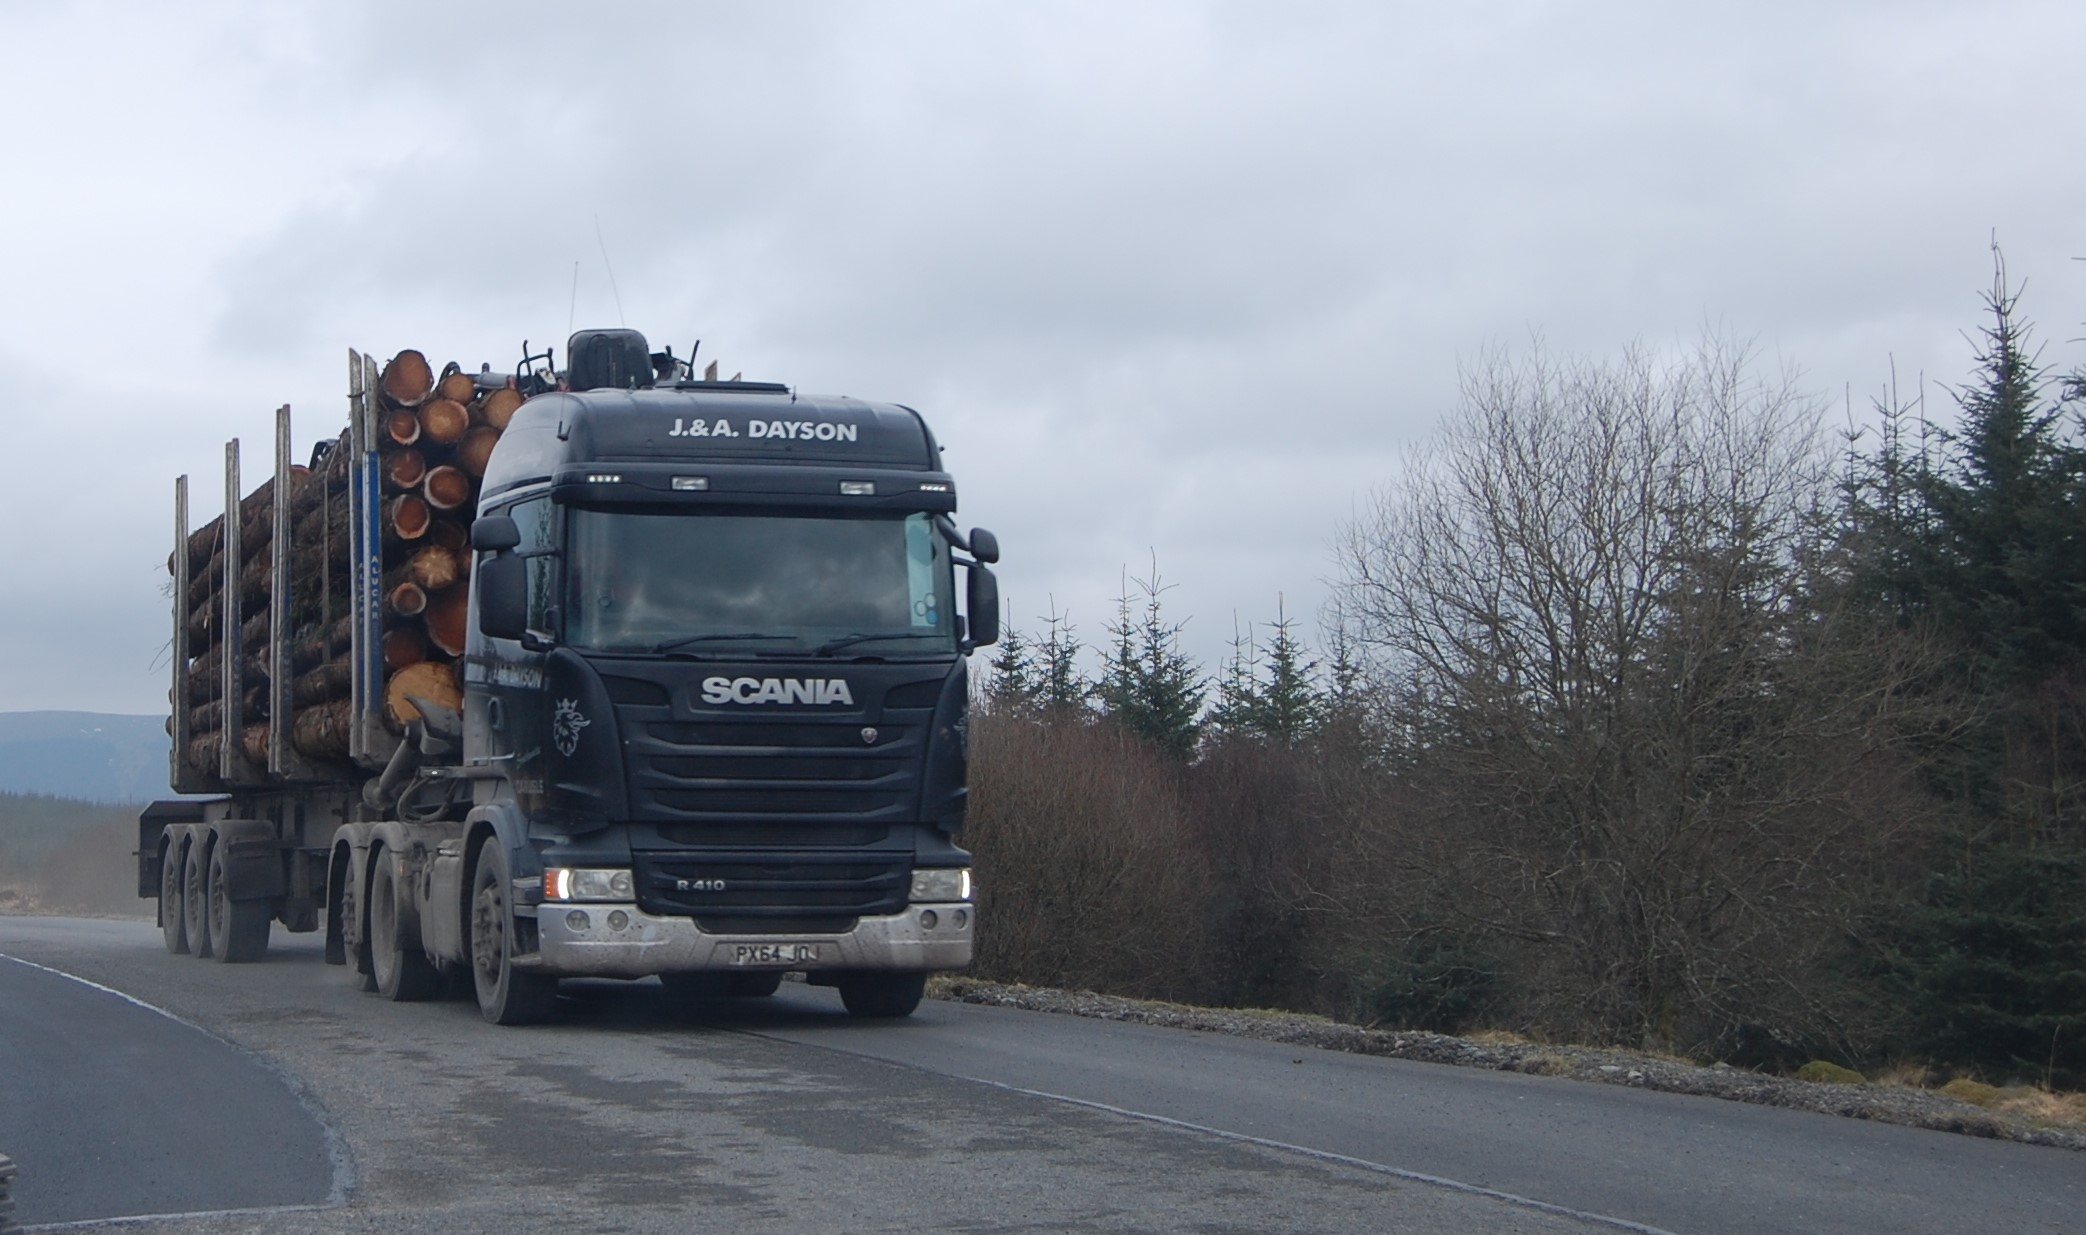 £1M boost for timber transport projects